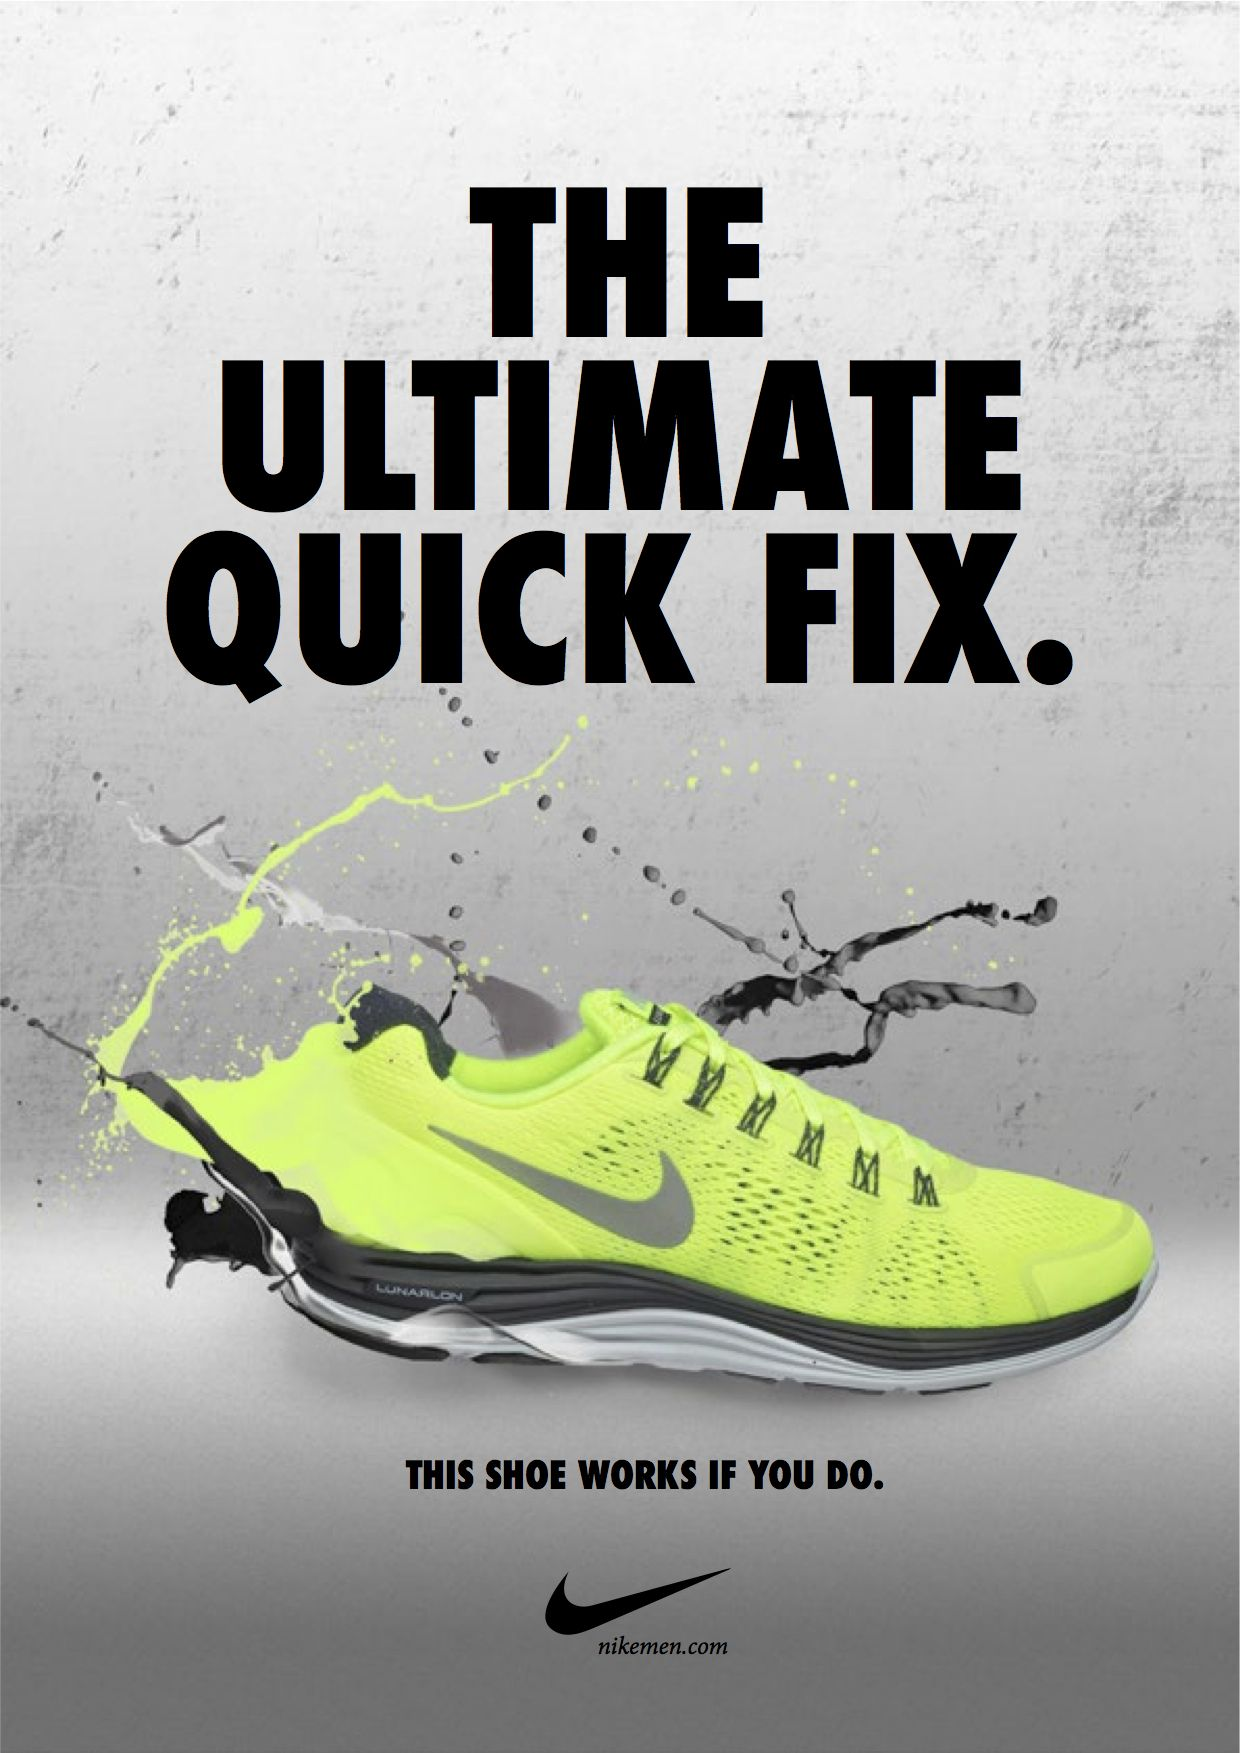 nike advertising photoshop